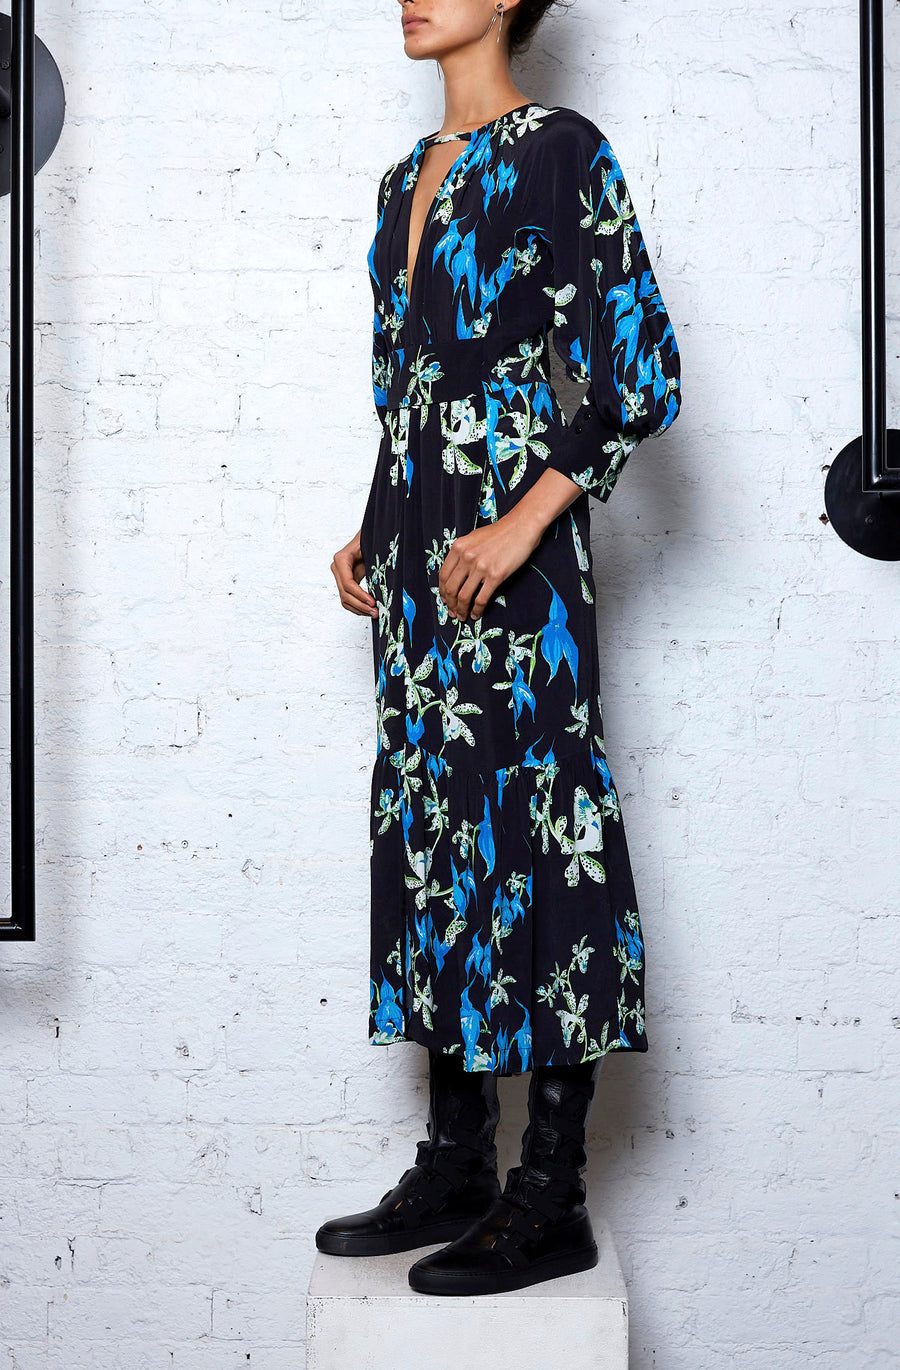 Restoration Dress - Blue/Black Flower